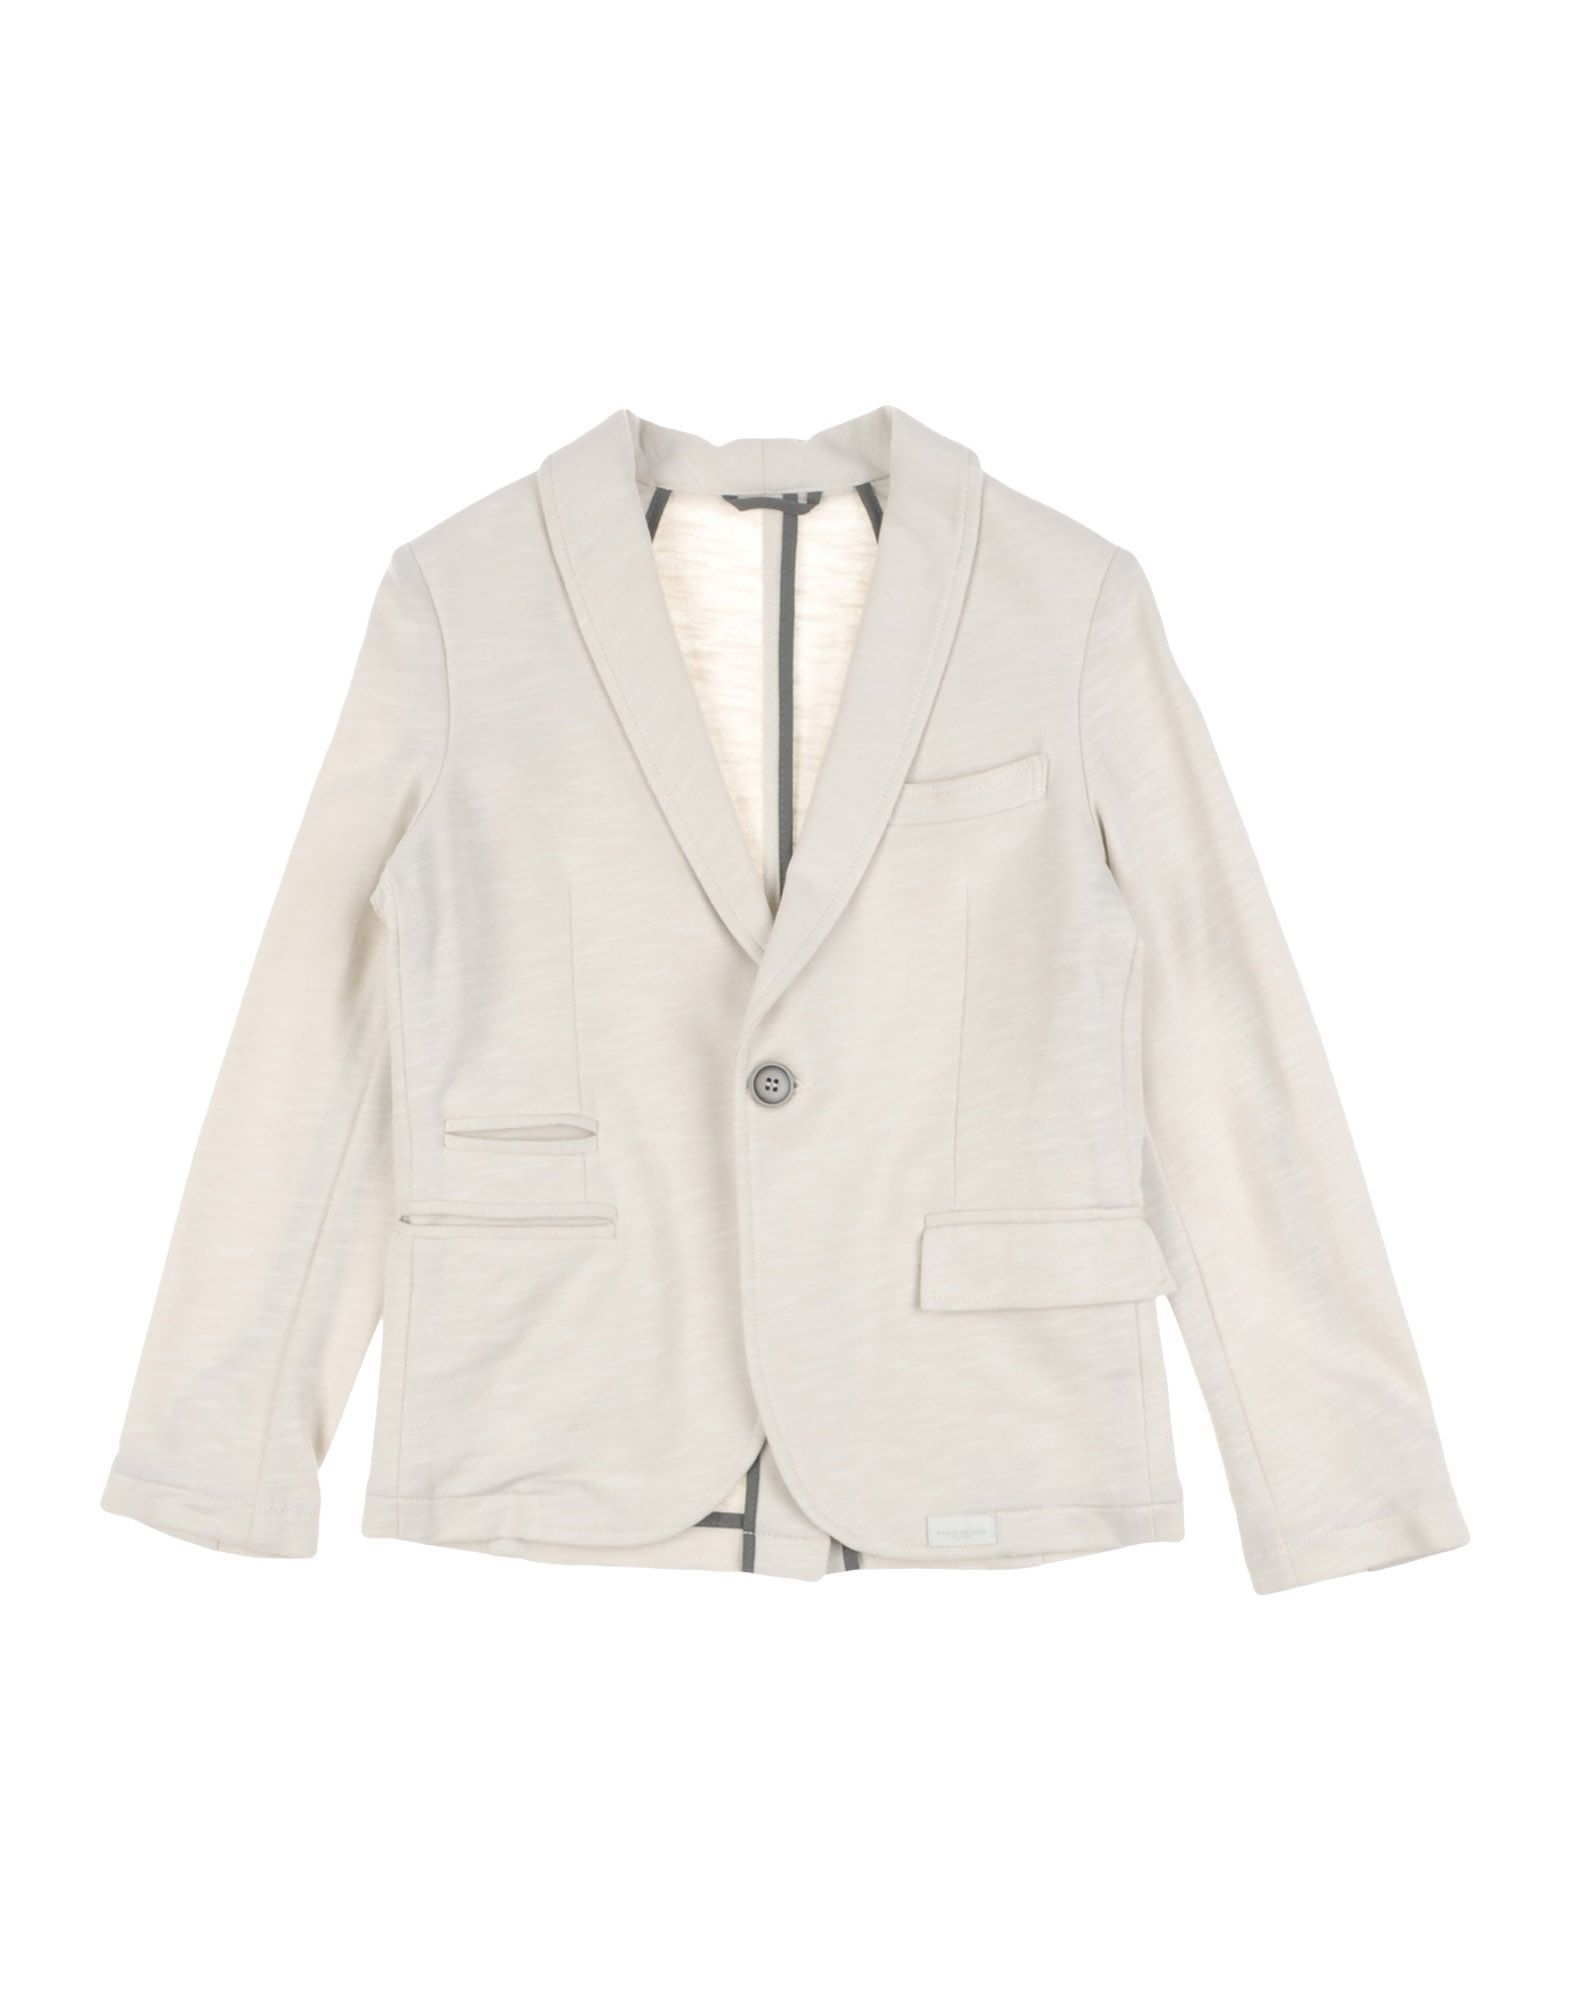 SUITS AND JACKETS Paolo Pecora Ivory Boy Cotton